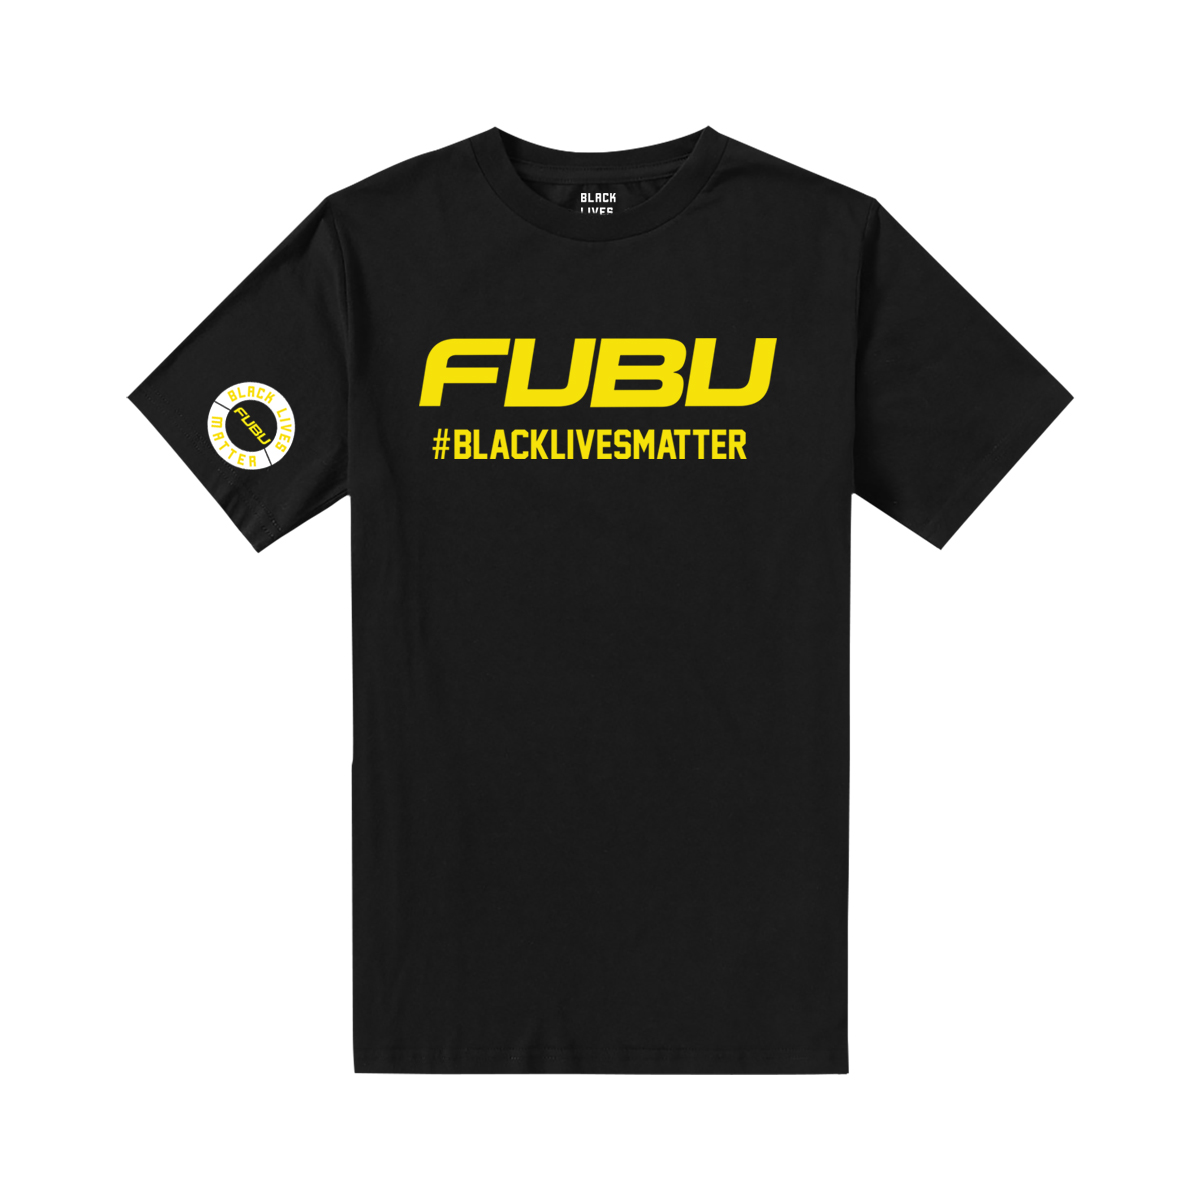 FUBU #BLACKLIVESMATTER T-Shirt